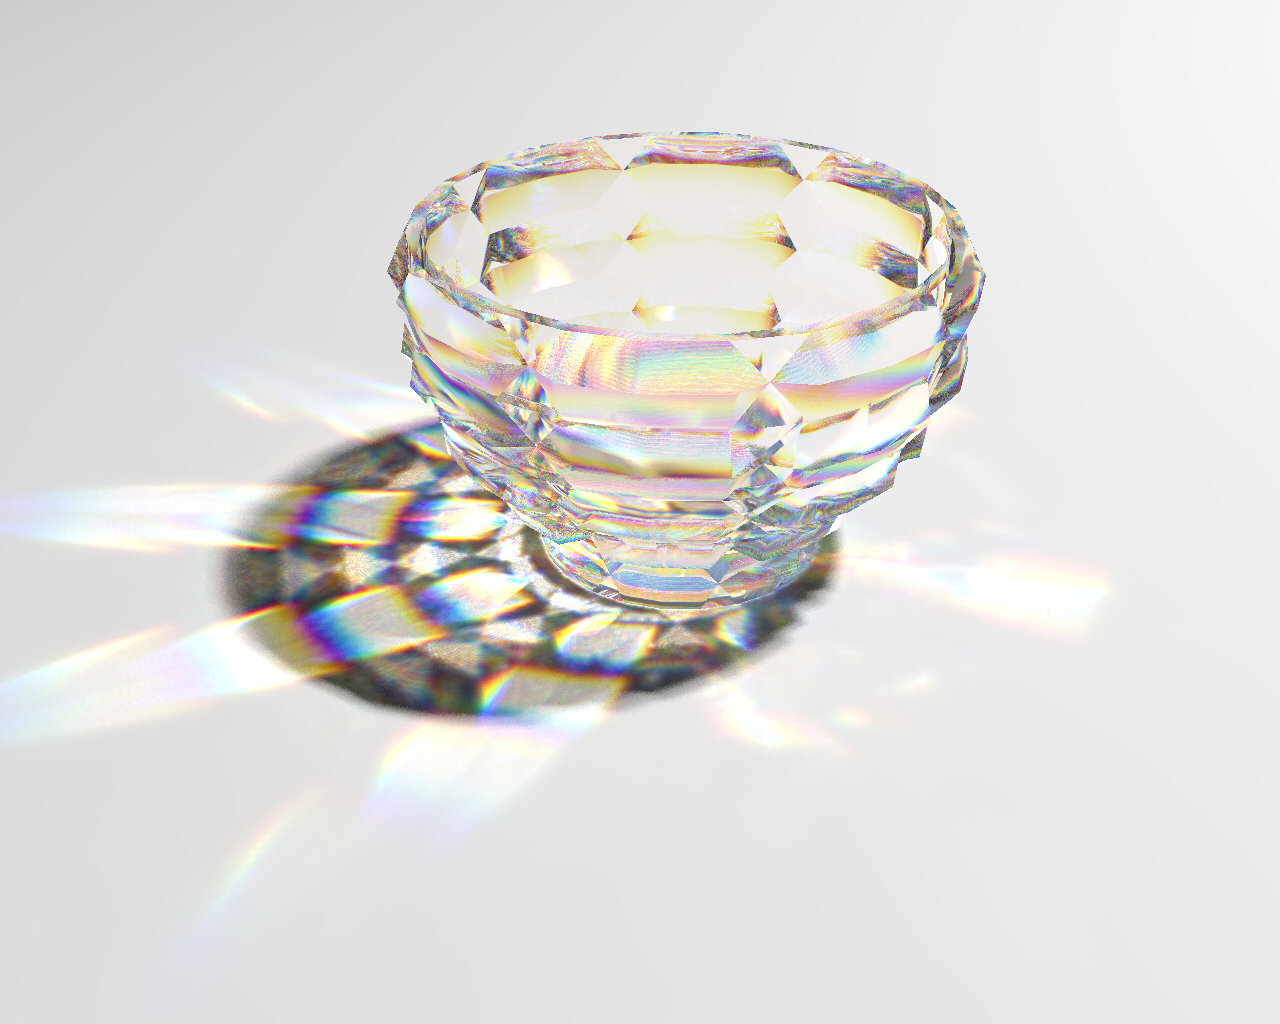 glass_bowl_fancy_wallpaper.jpg